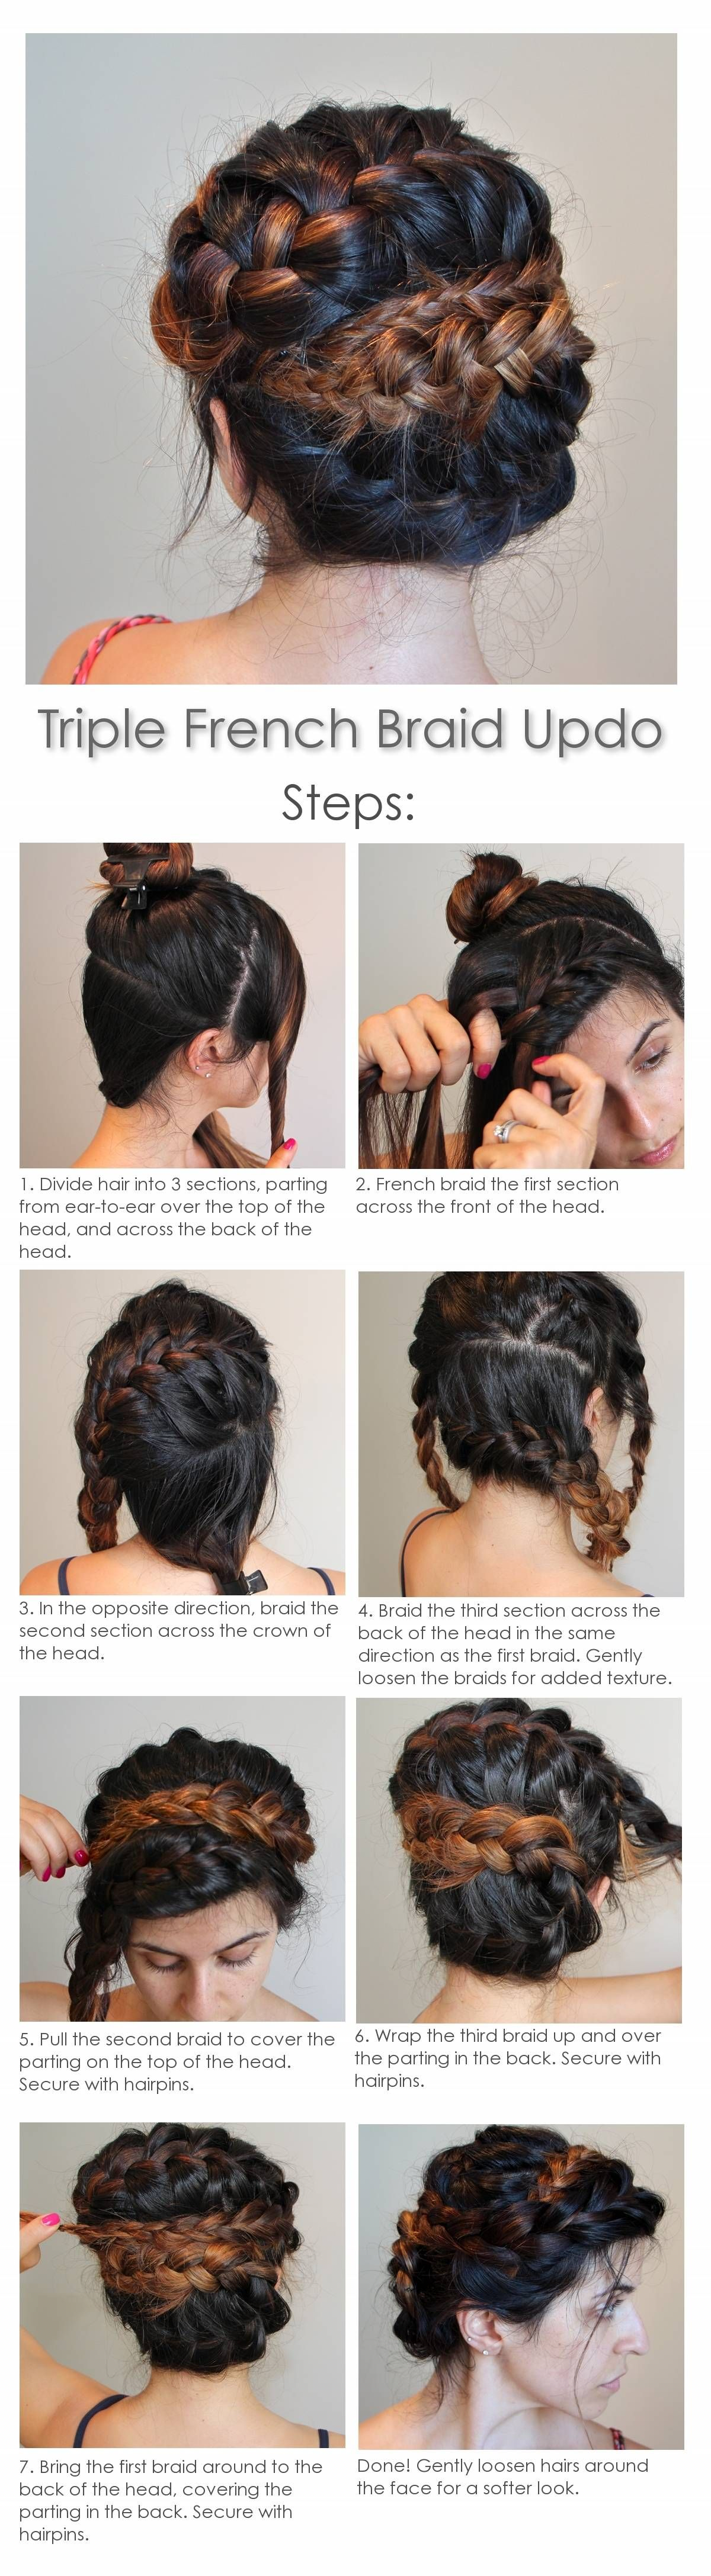 Triple french braid updo braids locs twsts and in between